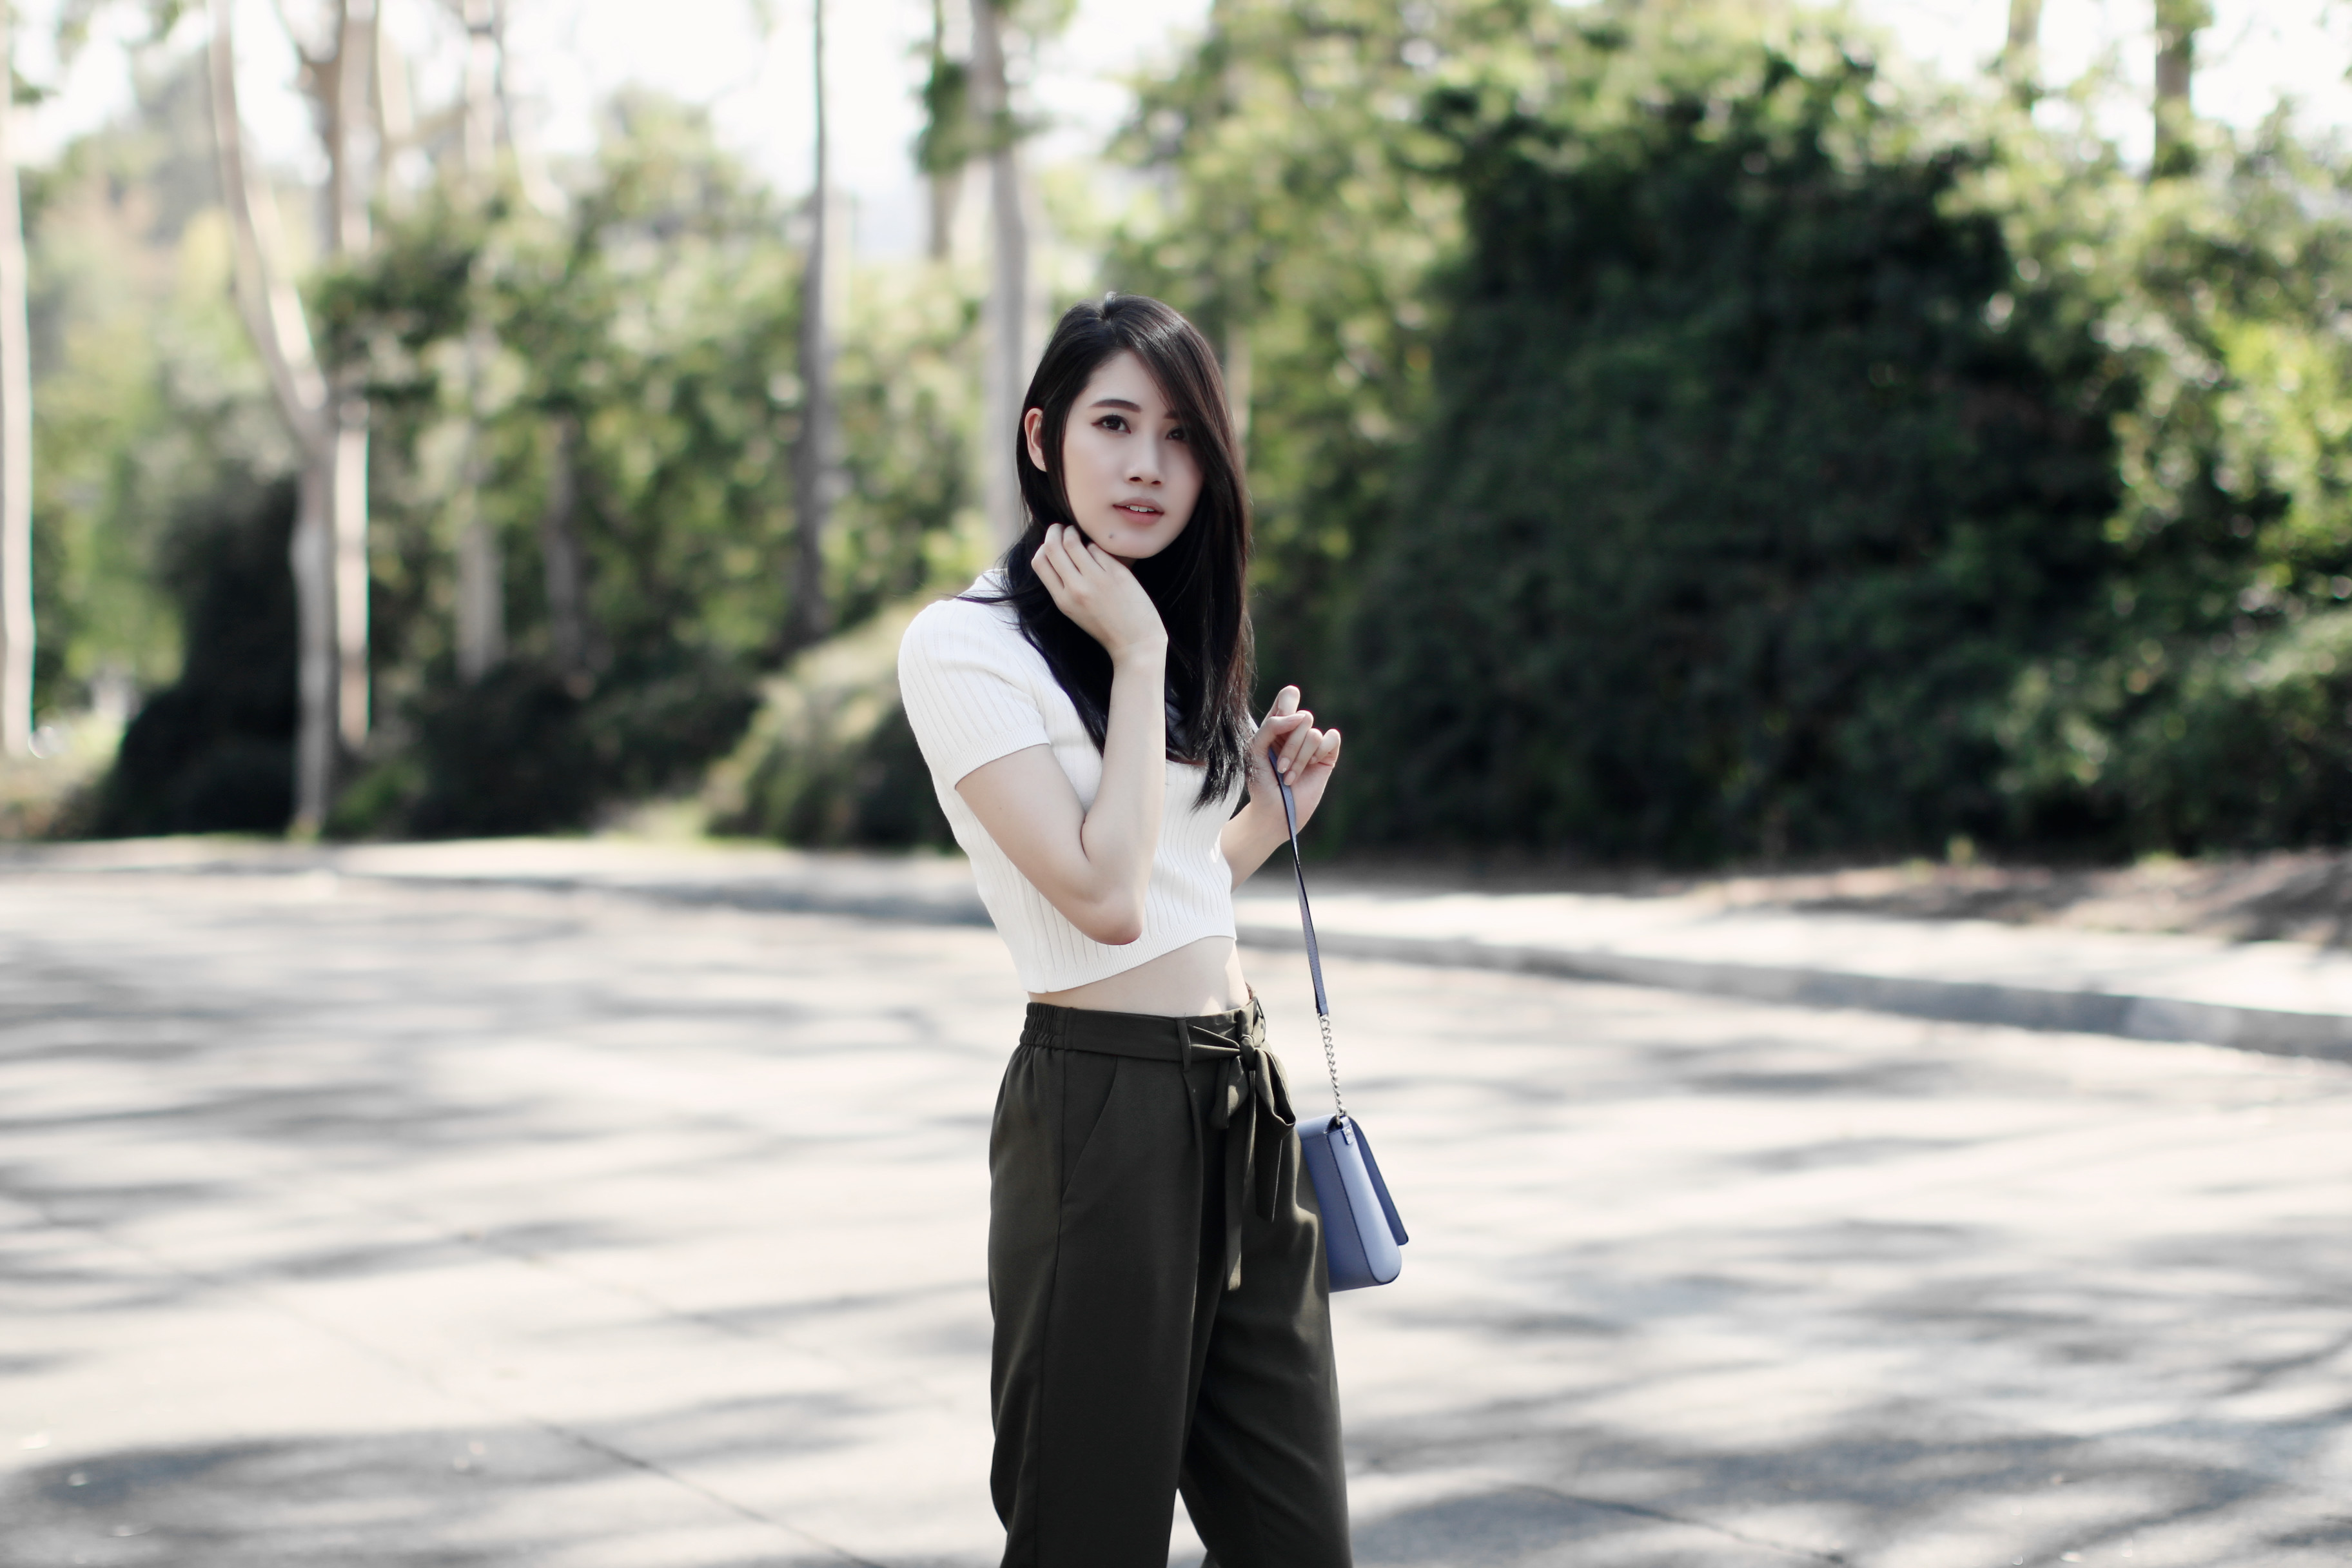 3438-ootd-fashion-style-outfitoftheday-wiwt-streetstyle-menswear-forever21-f21xme-trousers-elizabeeetht-clothestoyouuu